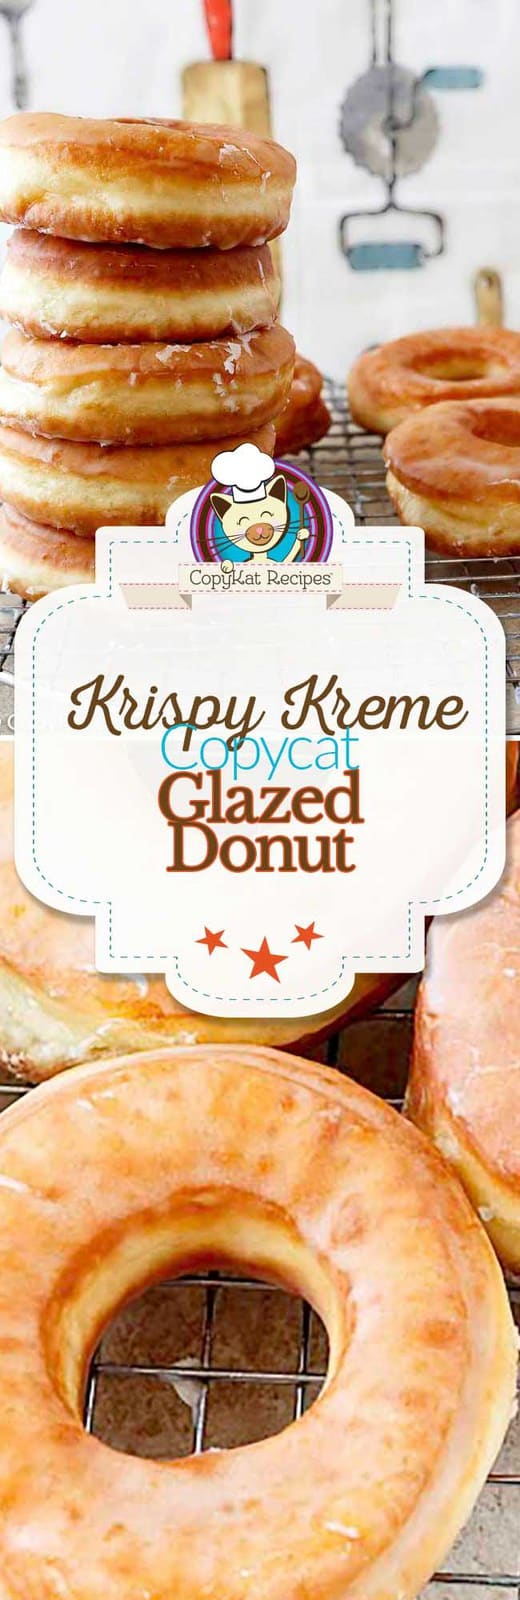 You can recreate the Krispy Kreme glazed donut at home with this copycat recipe.